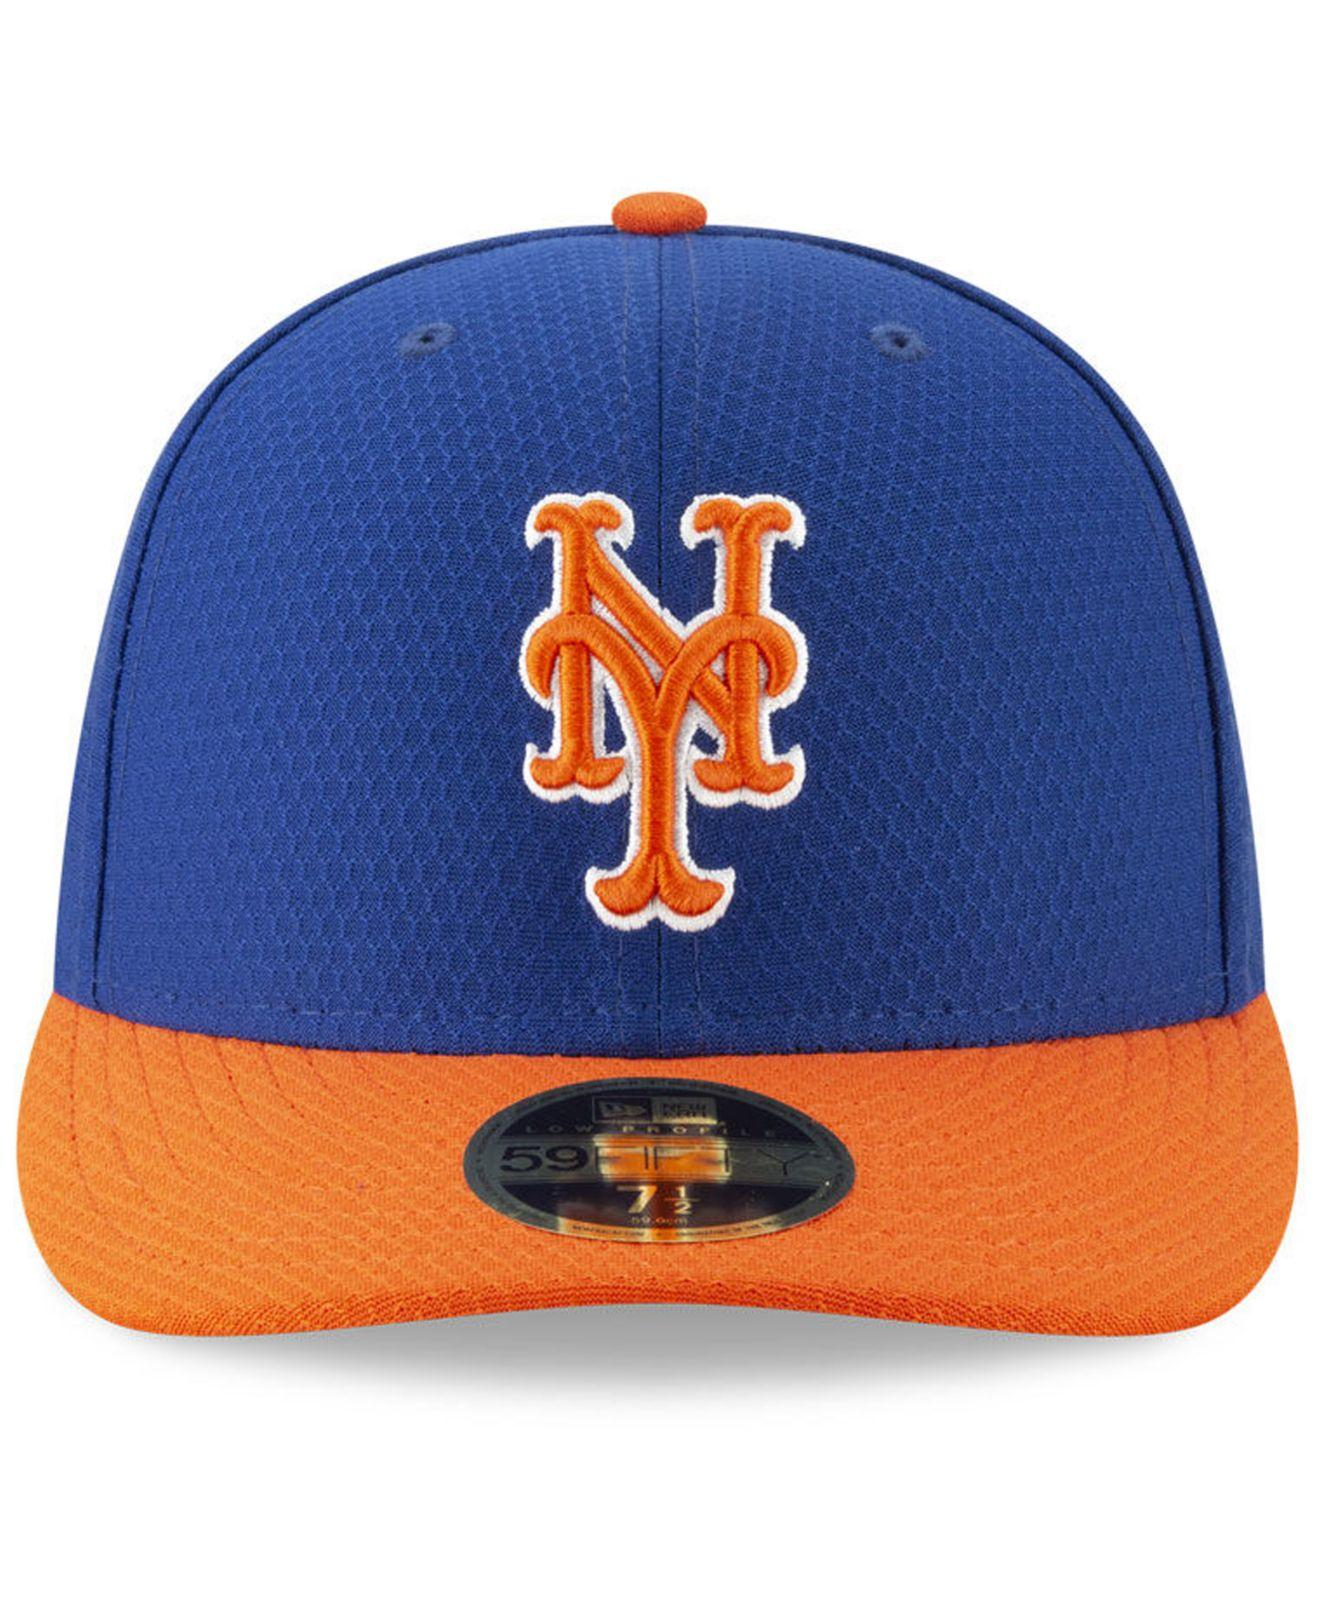 low priced 36cba 3558f ... era mlb vintage stripe 9fifty snapback cap larger image a3609 837ac  ny mets  cap  ny mets cap  lyst ktz new york mets spring training 59fifty fitted low  ...